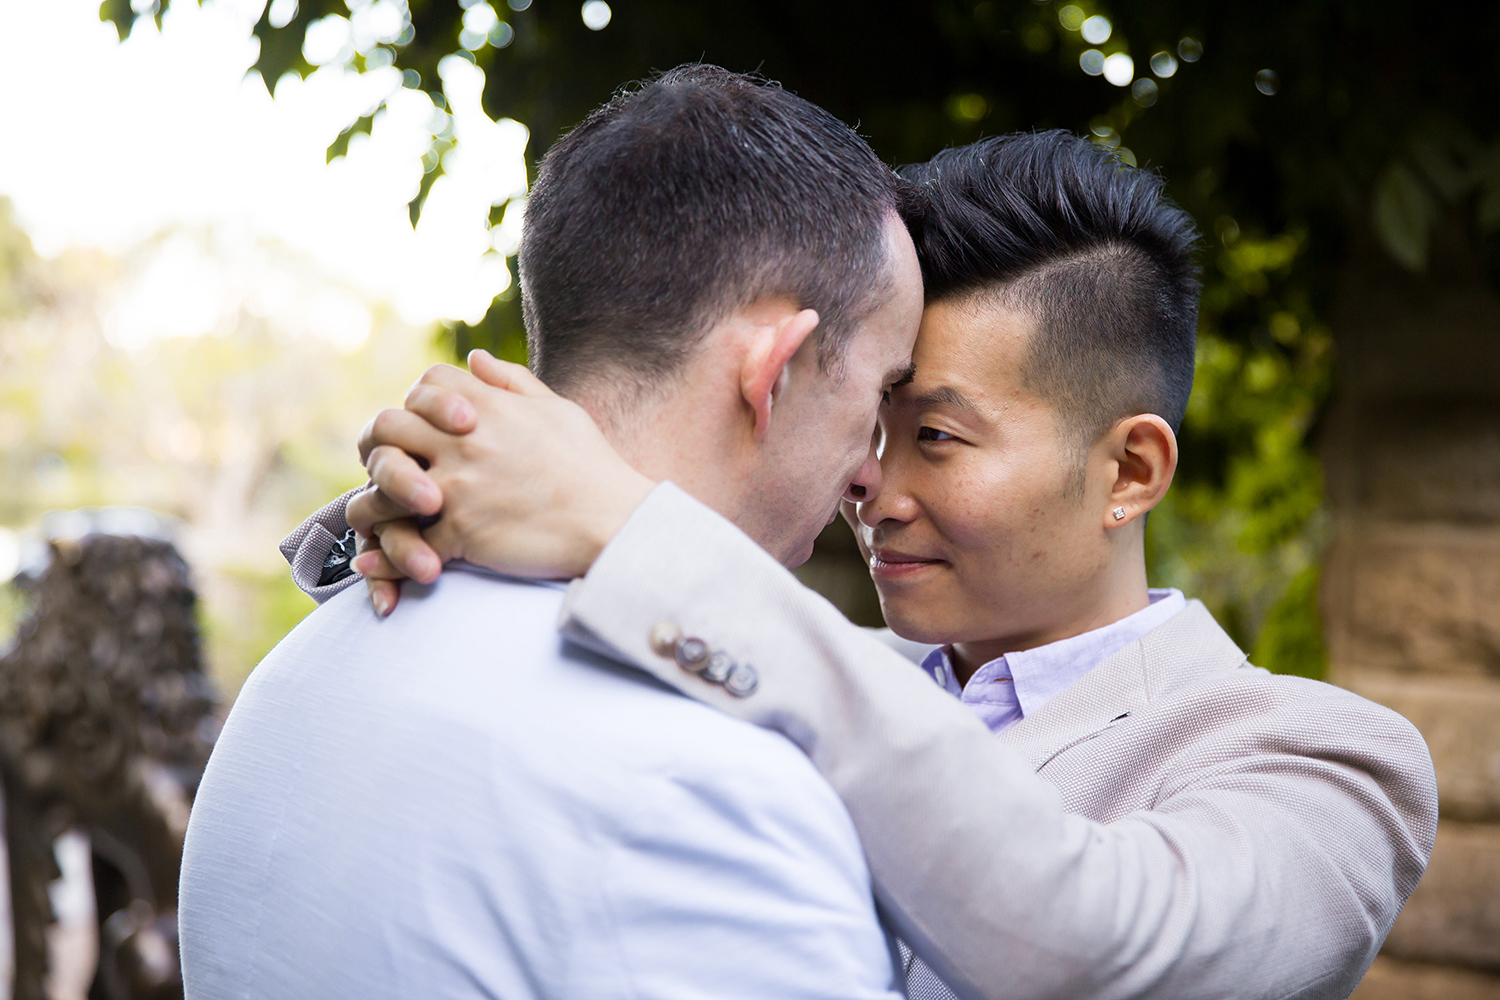 Sydney Gay Wedding Photographer - Jennifer Lam Photography (31).jpg